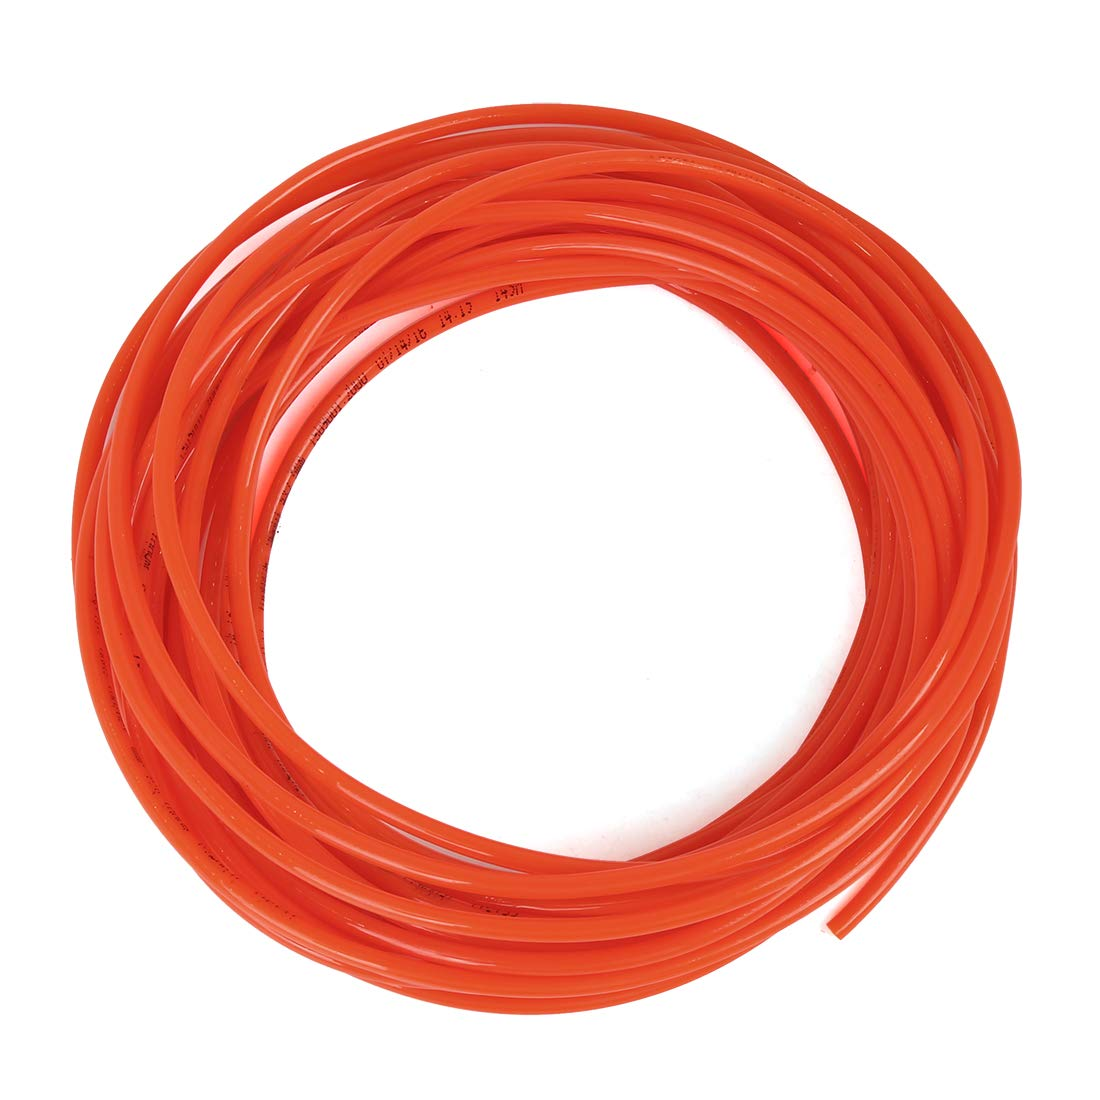 X AUTOHAUX 10 Meter 32.8ft 2.5mm Inner Dia Universal Polyurethane PU Vacuum Hose Tube Red for Car